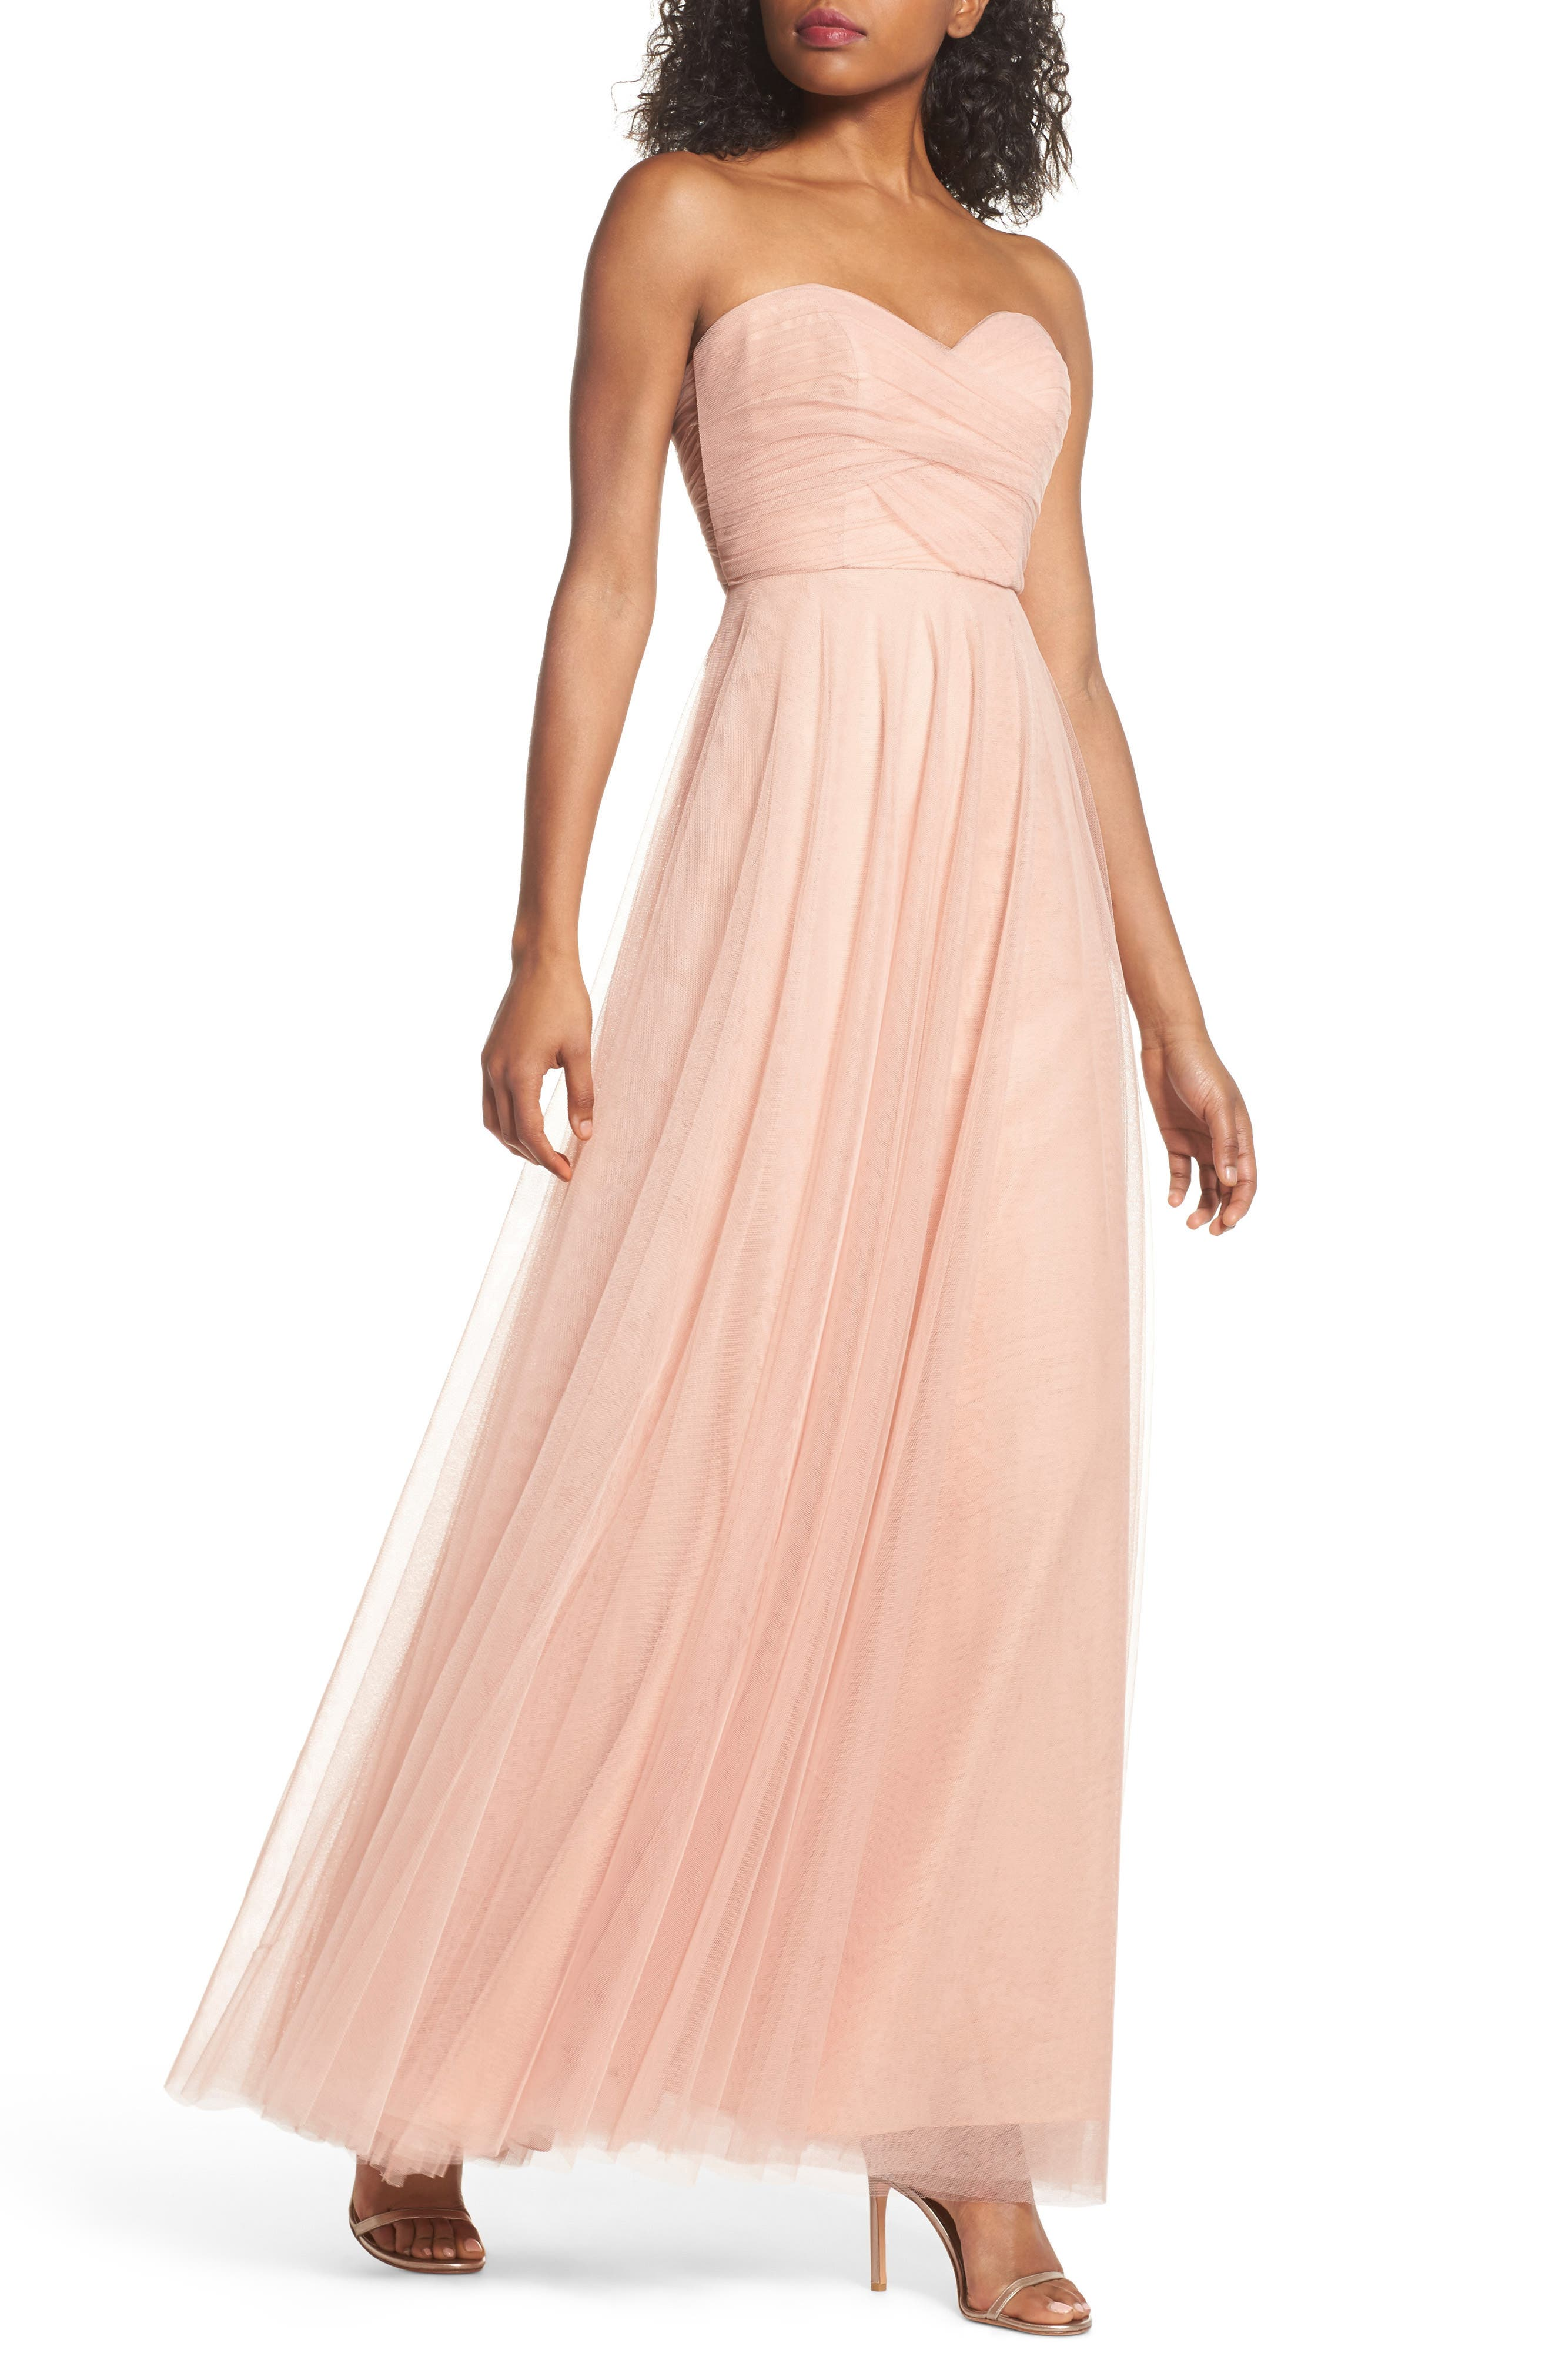 Alternate Image 1 Selected - Jenny Yoo Julia Convertible Soft Tulle Gown